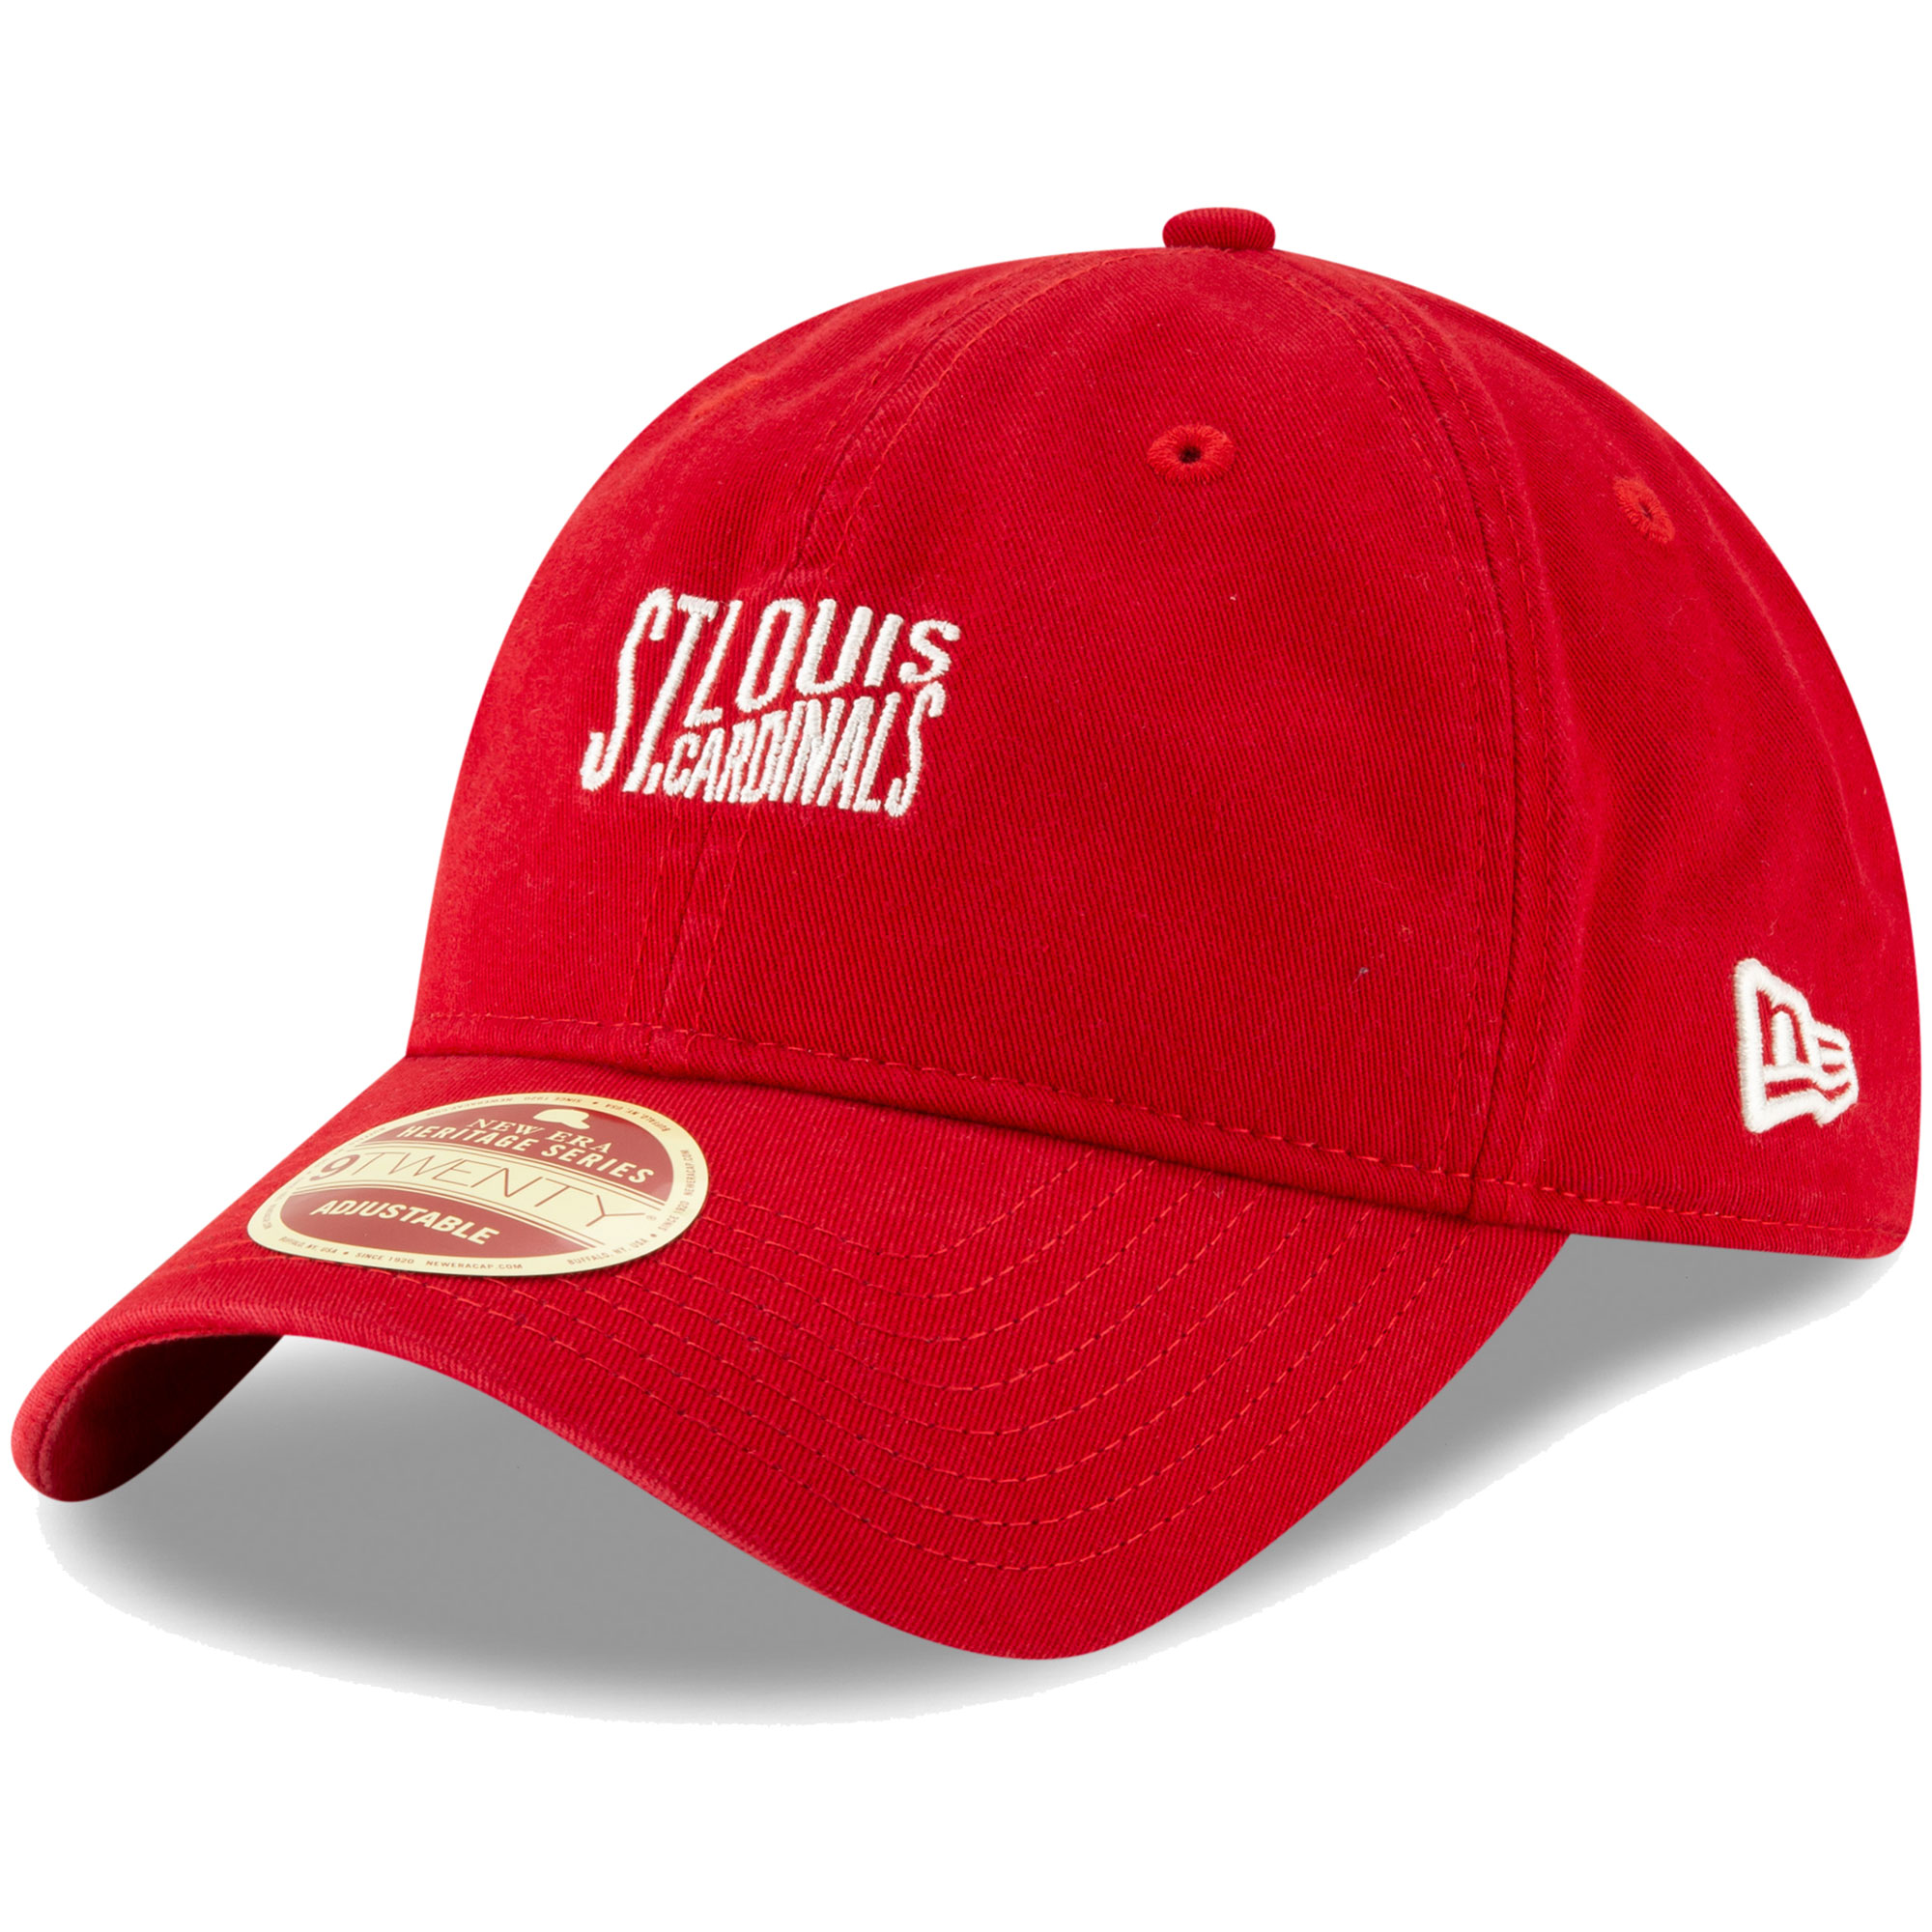 St. Louis Cardinals New Era Cooperstown Collection Classic Front 9TWENTY Adjustable Hat - Red - OSFA